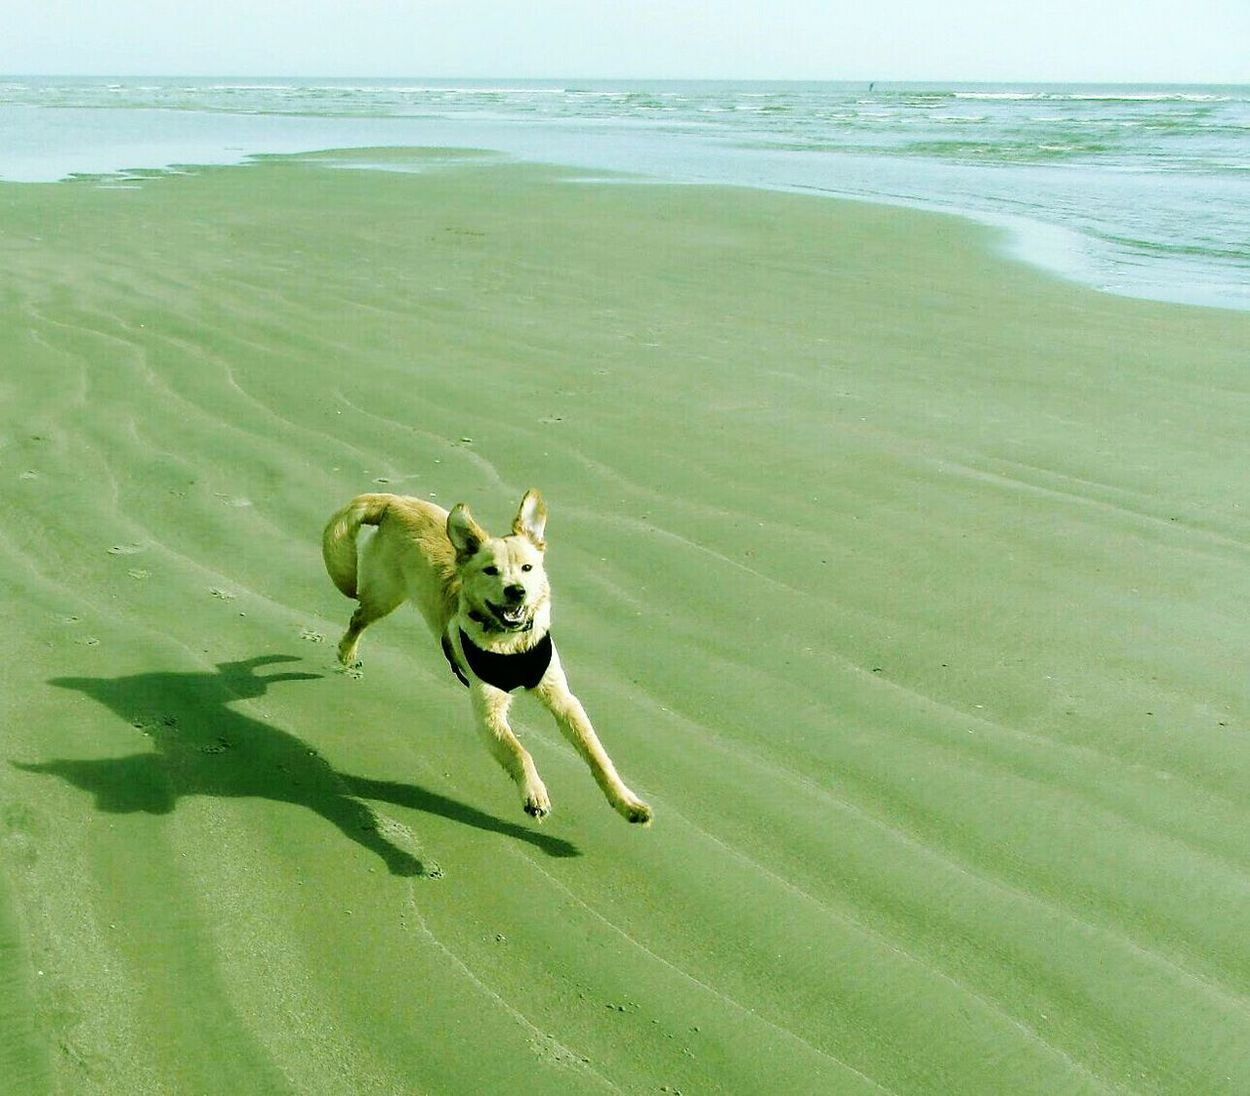 Happy Dog Sea One Animal Water Beach Mammal Nature Domestic Animals Animal Themes Outdoors No People Pets Day Love To Run Isle Of Palms Paw Print Freedom Smiling Puppy Sand In My Paws Golden Retriever Running Labrador Retriever Beach Hair Dont Care Live For The Story